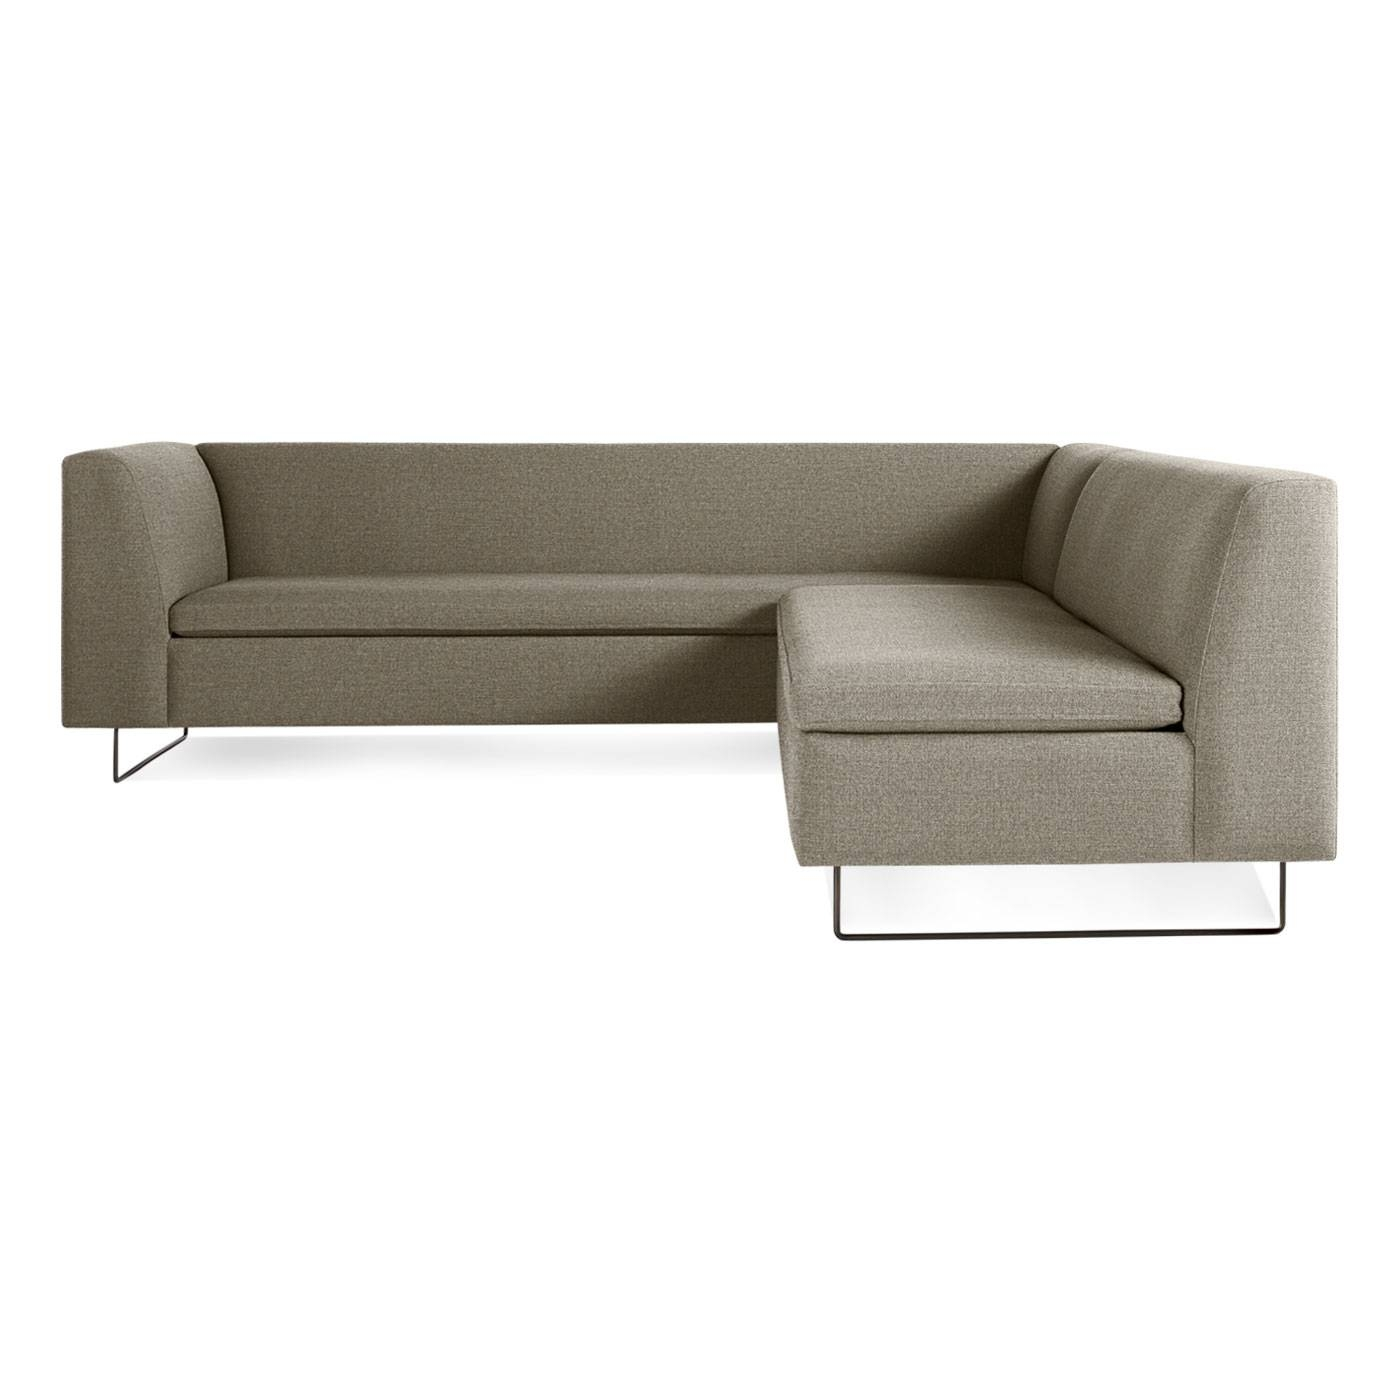 Featured Photo of Sleek Sectional Sofa